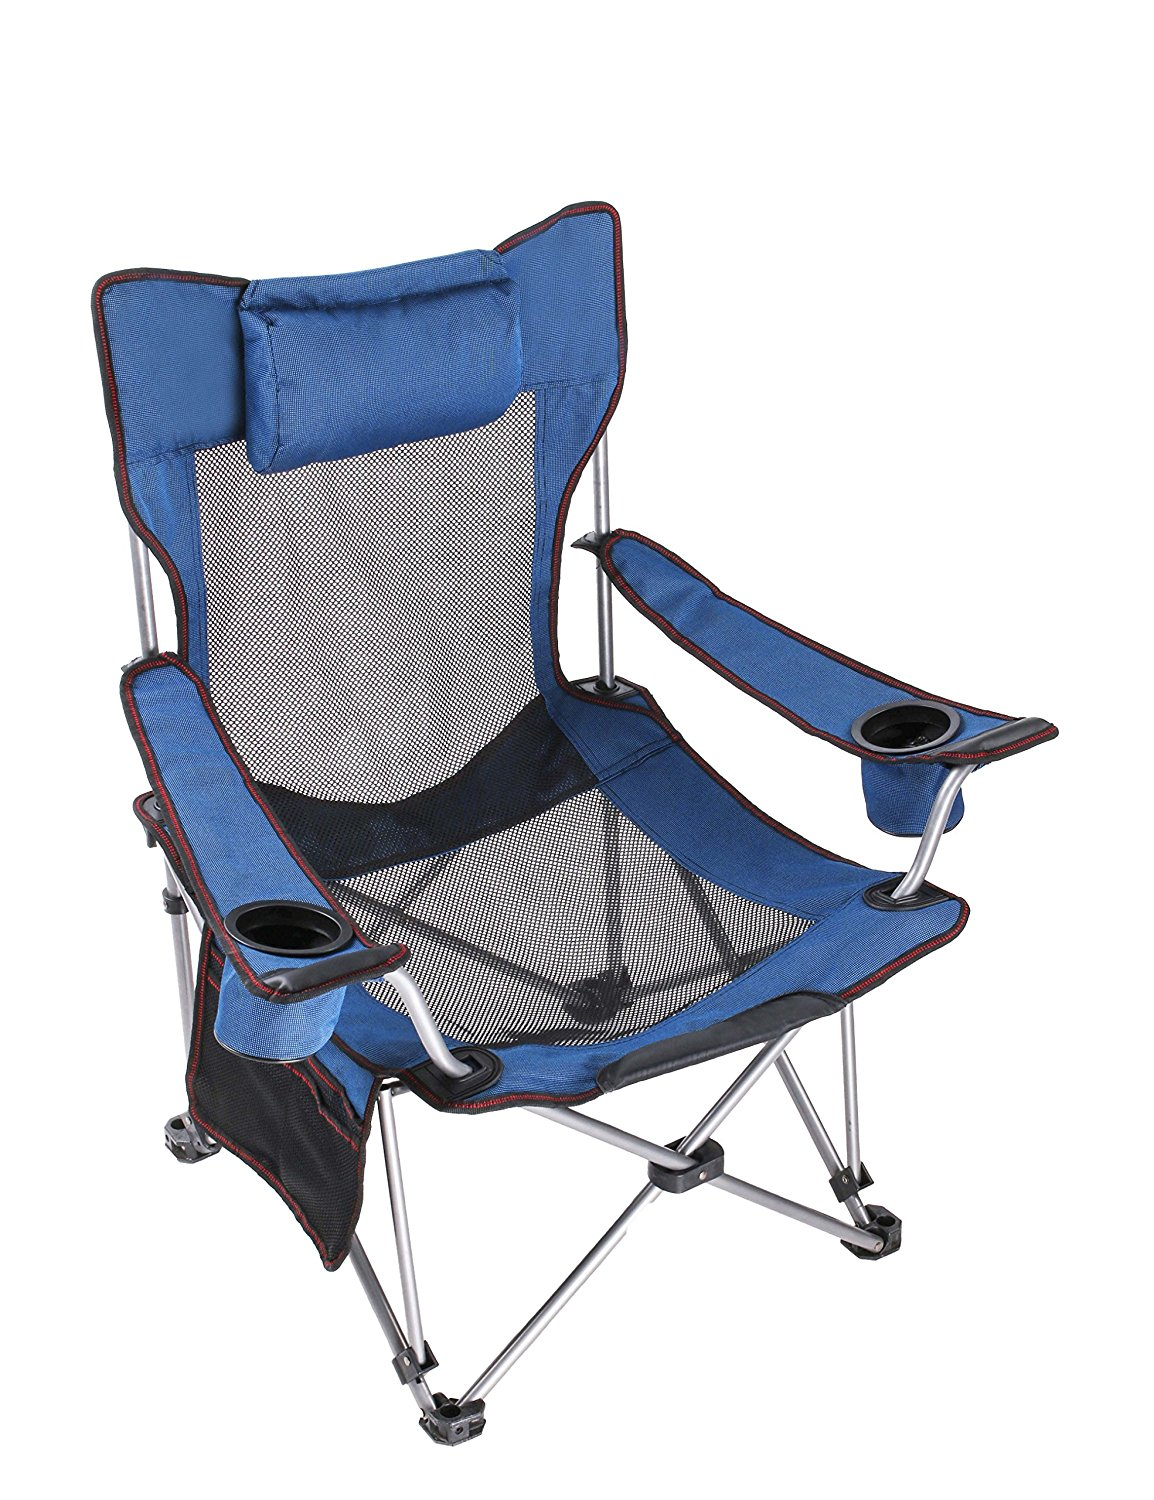 Fishing Chair With Headrest Bedroom Online India Lightweight Reclining Camping Standard Size